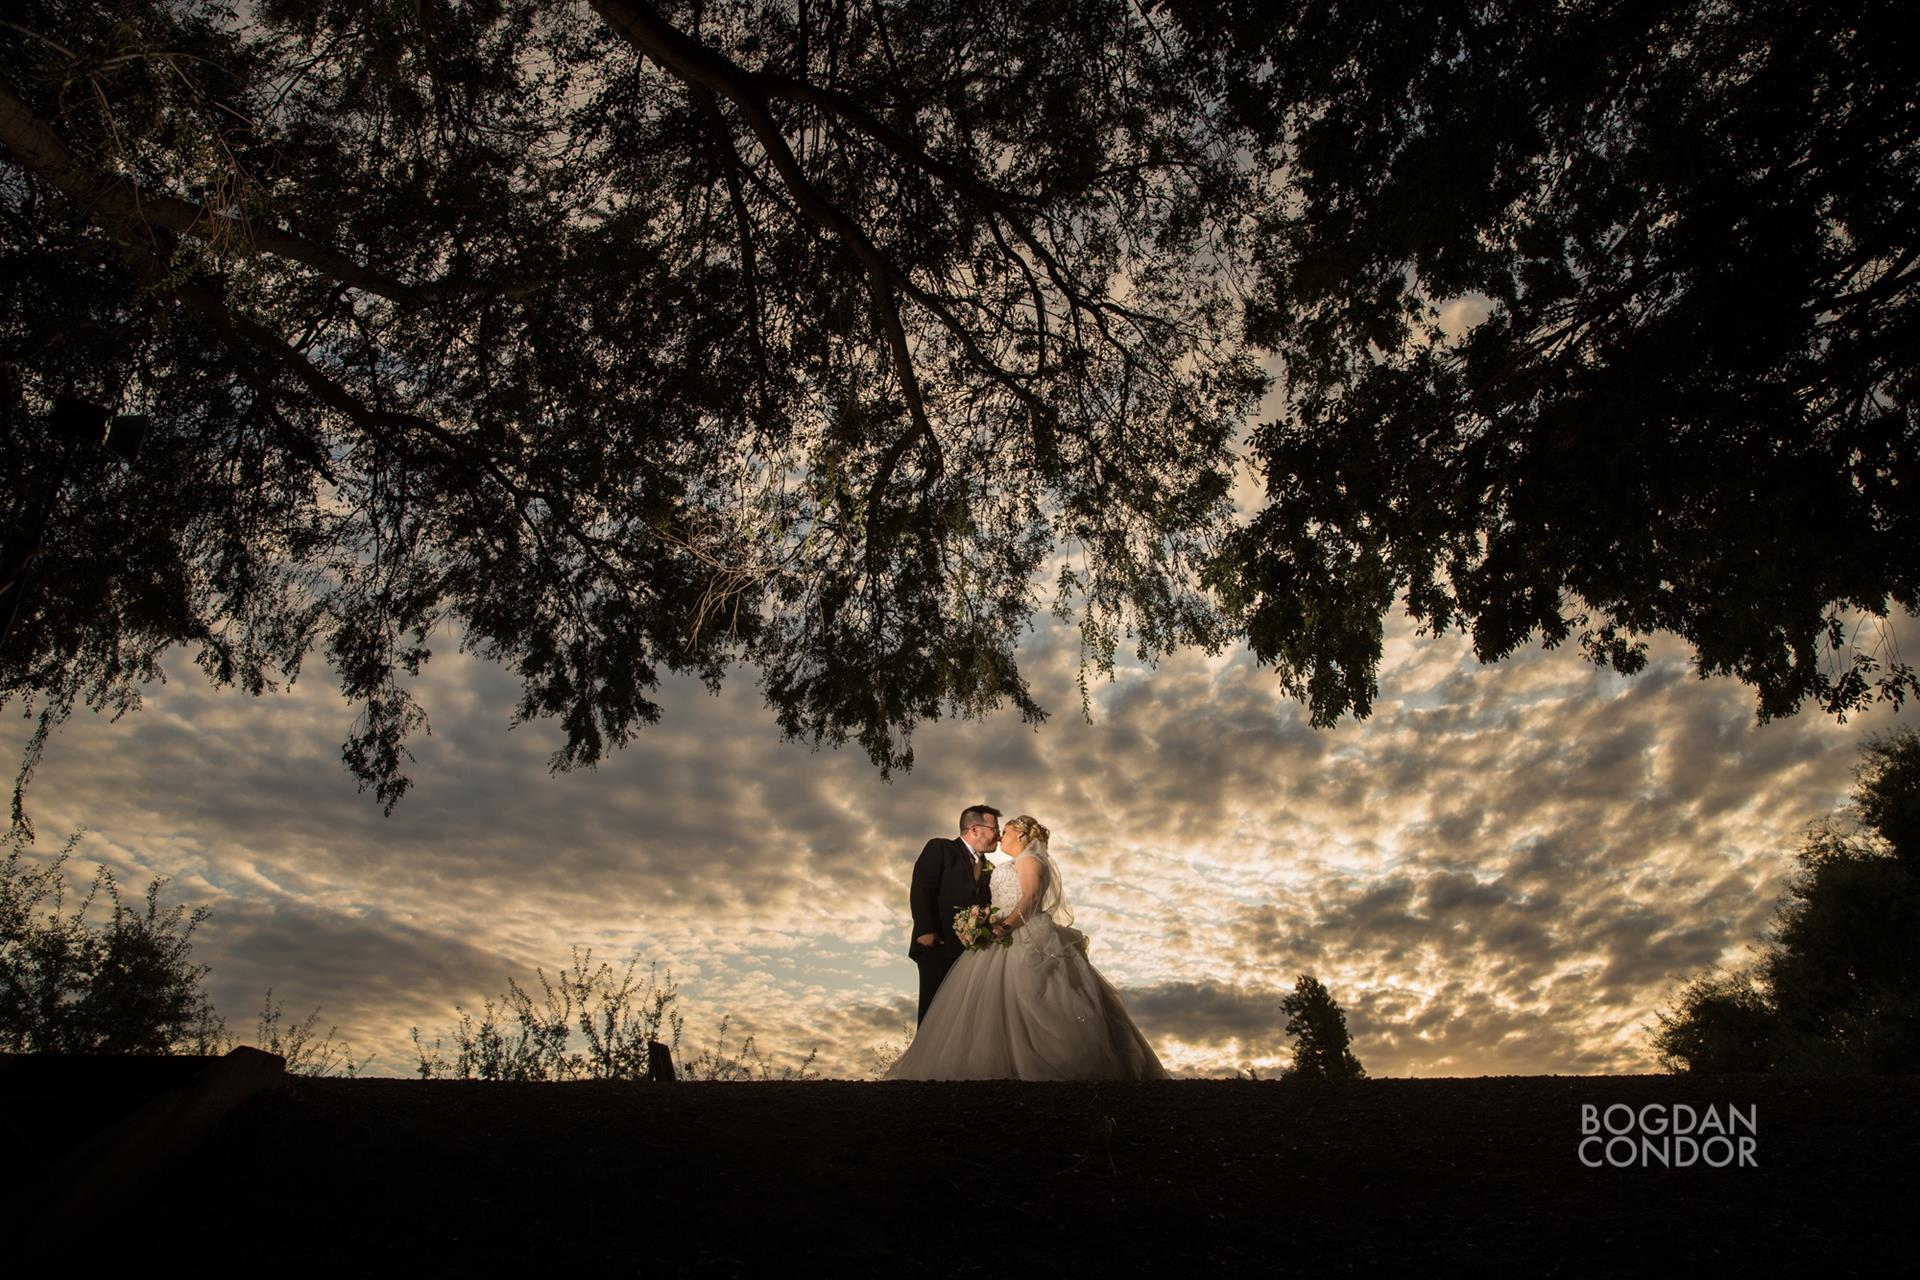 Bride and Groom under trees and clouds at sunset